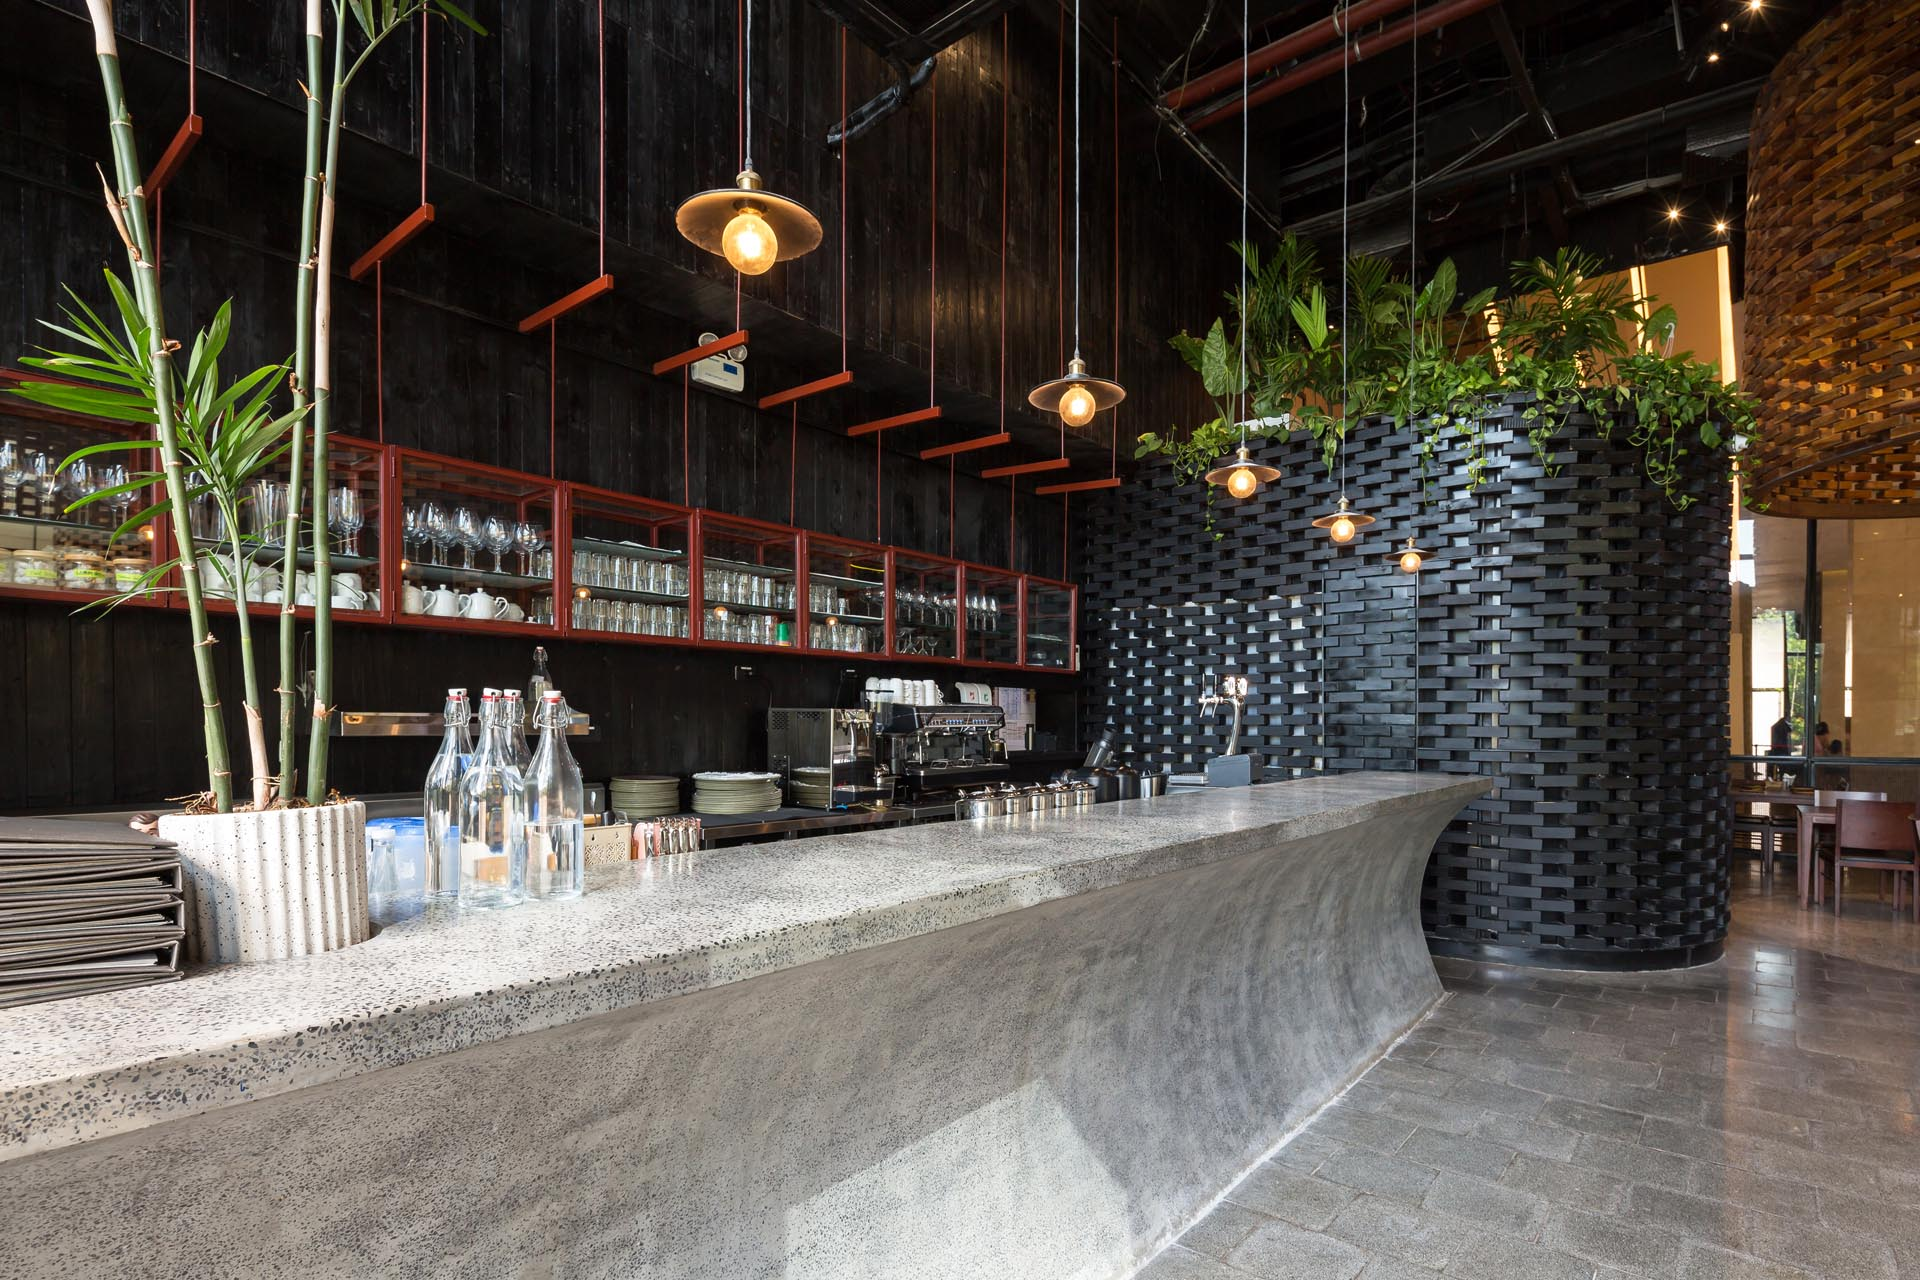 A modern restaurant with a curved concrete bar.